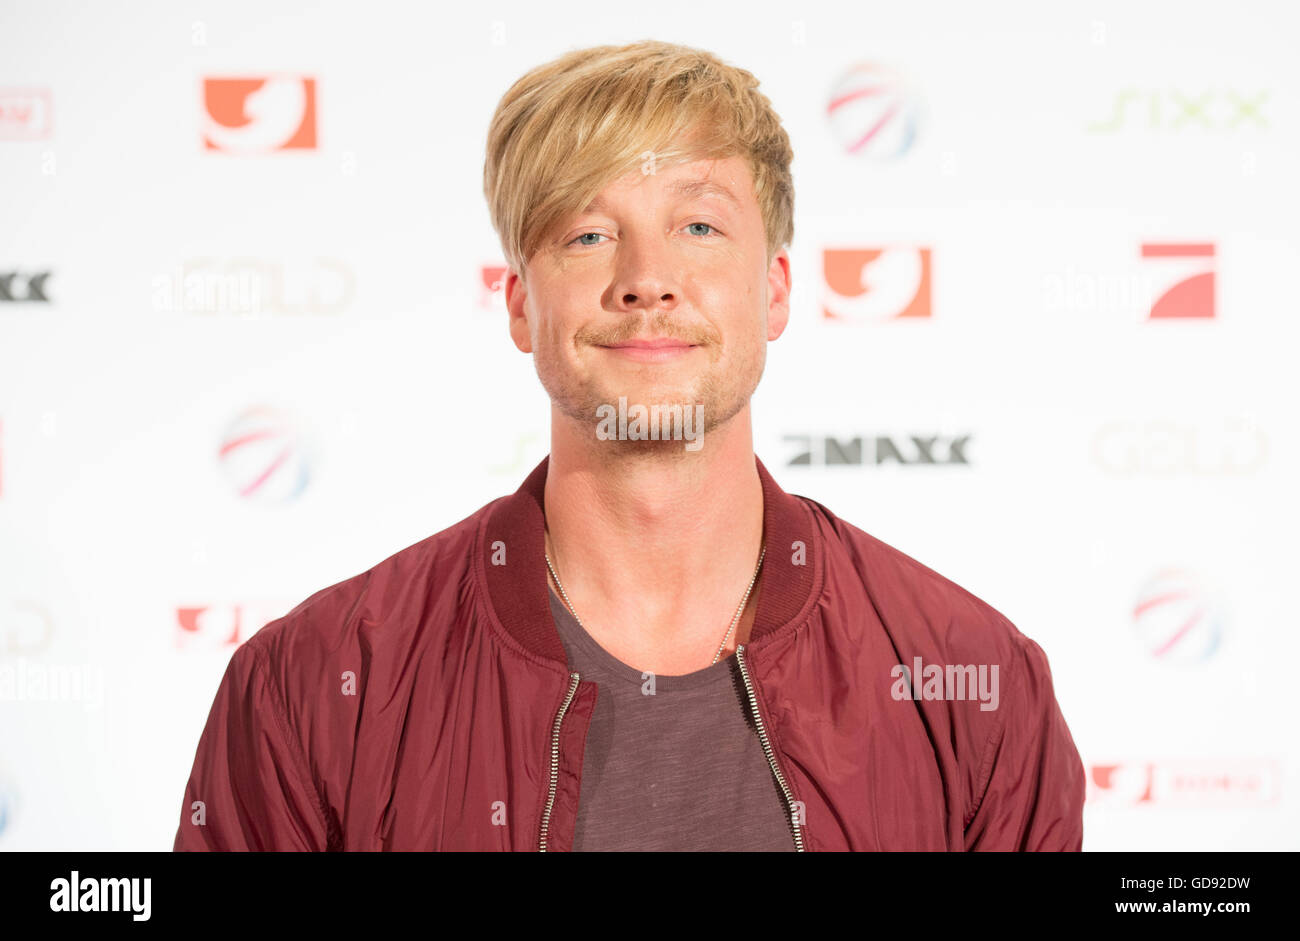 Finnish musician Samu Haber attends the annual programme presentation of media comapny ProSiebenSat.1. in Hamburg, Stock Photo